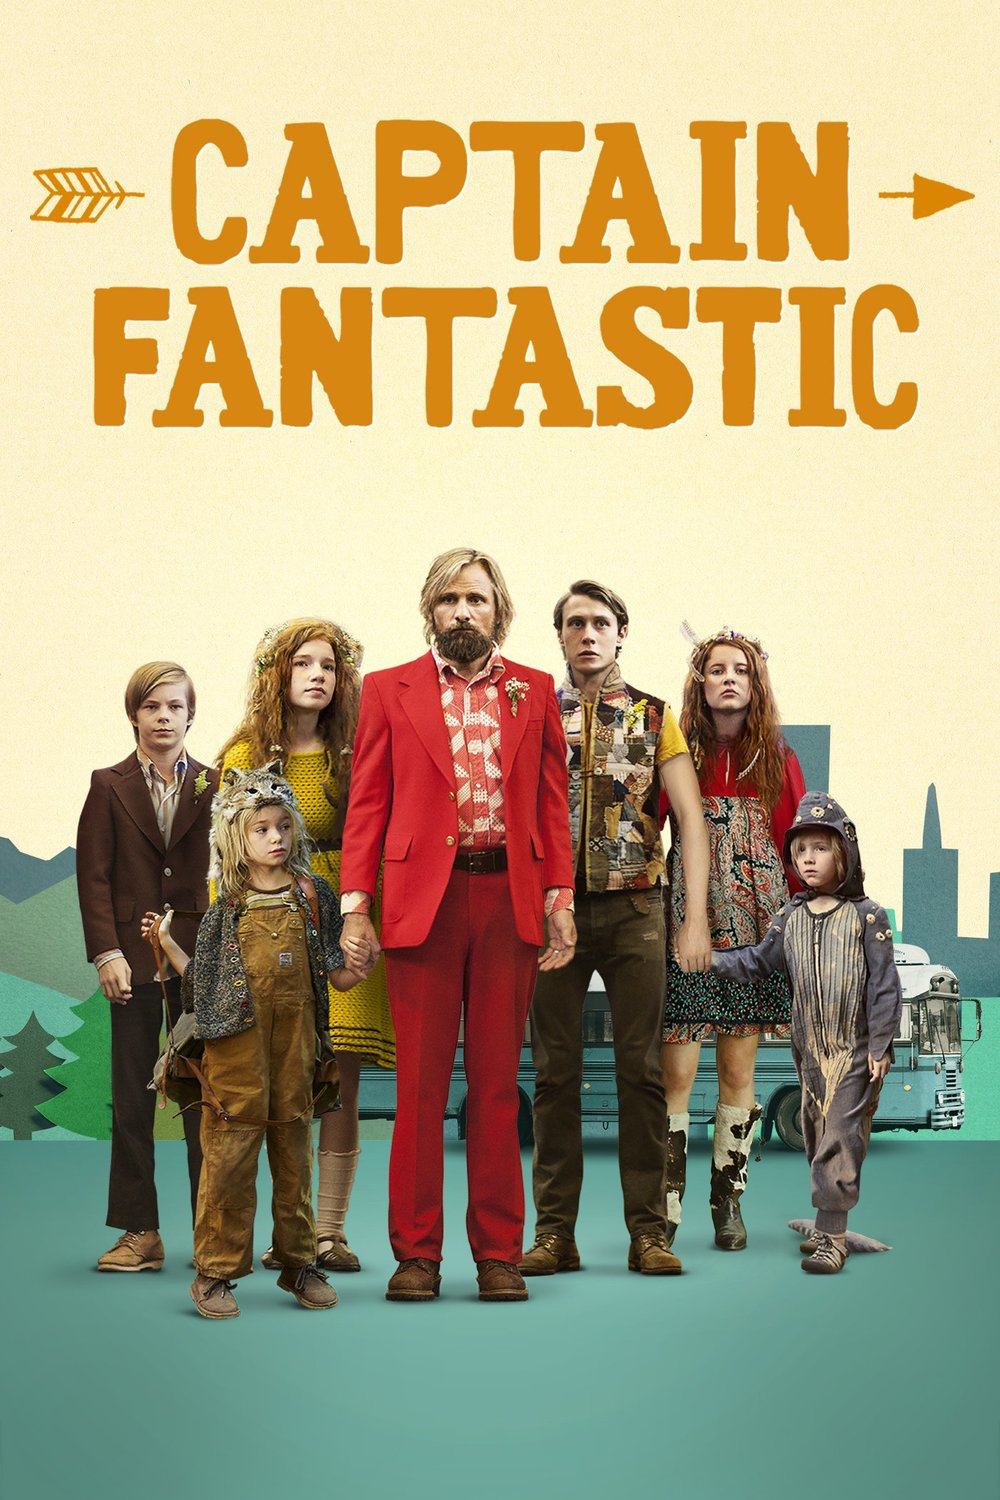 Captain-Fantastic-poster-min.jpeg